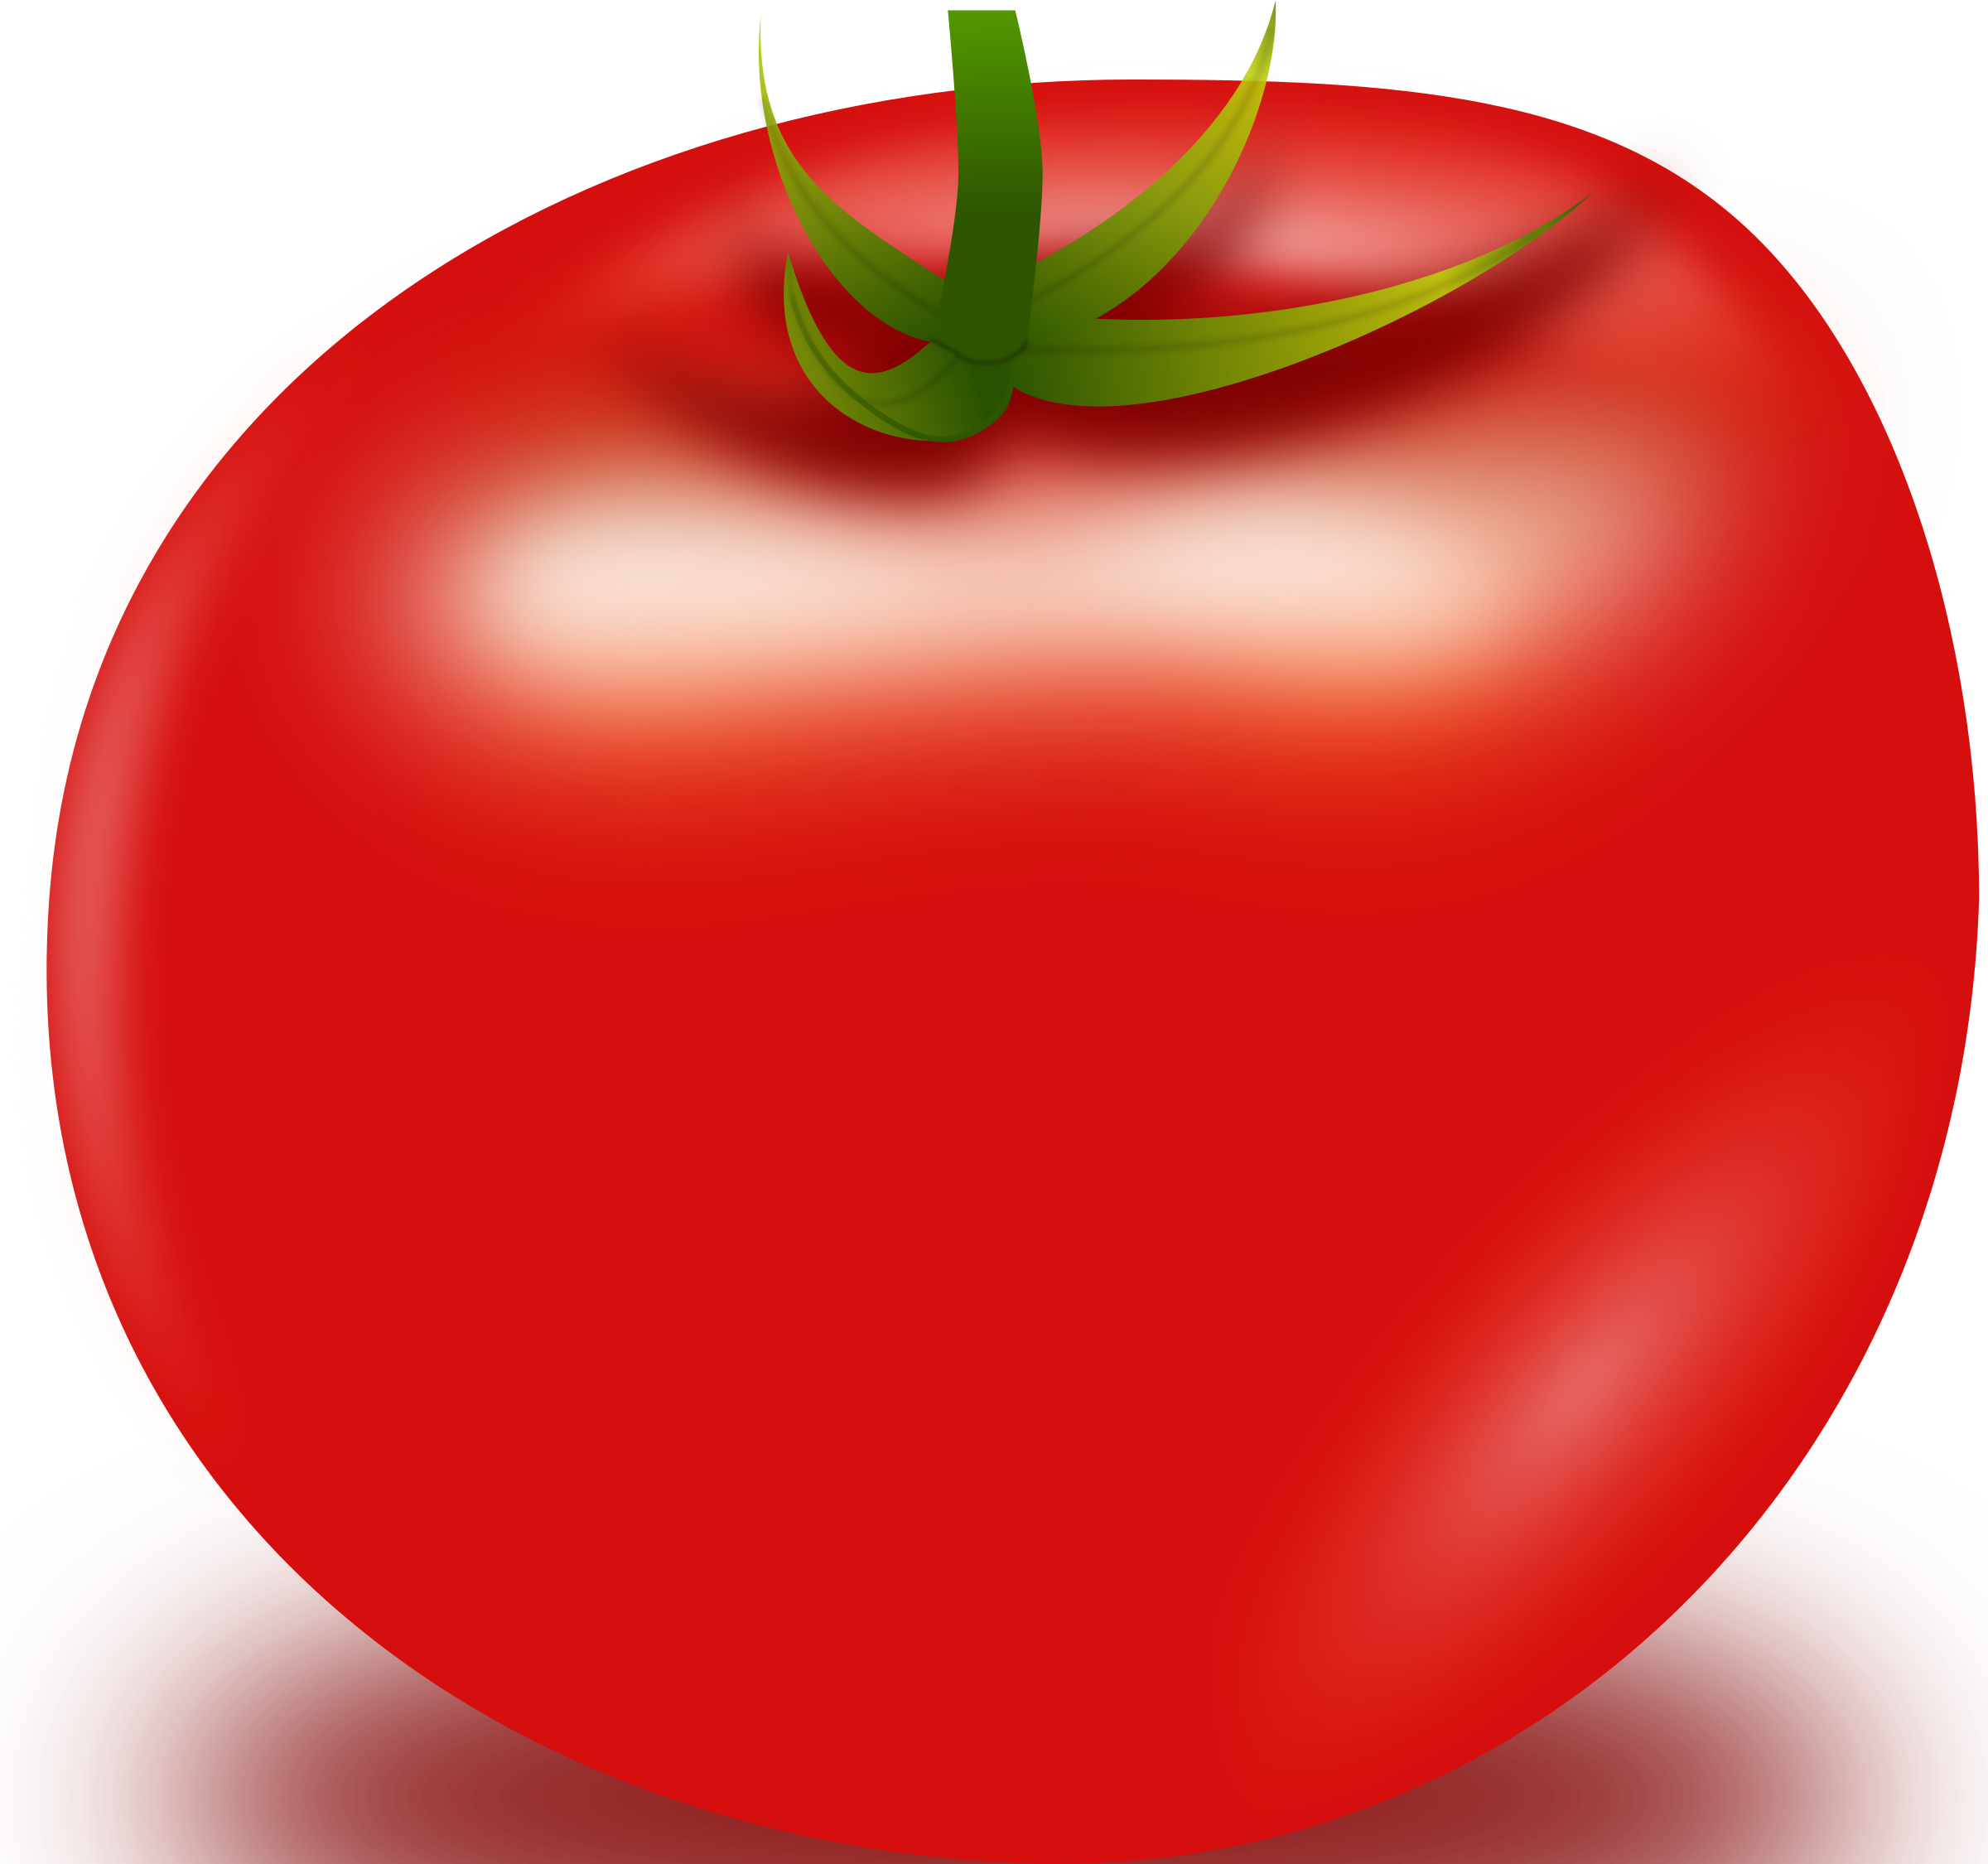 Tomato Clip Art Pictures to pin on Pinterest